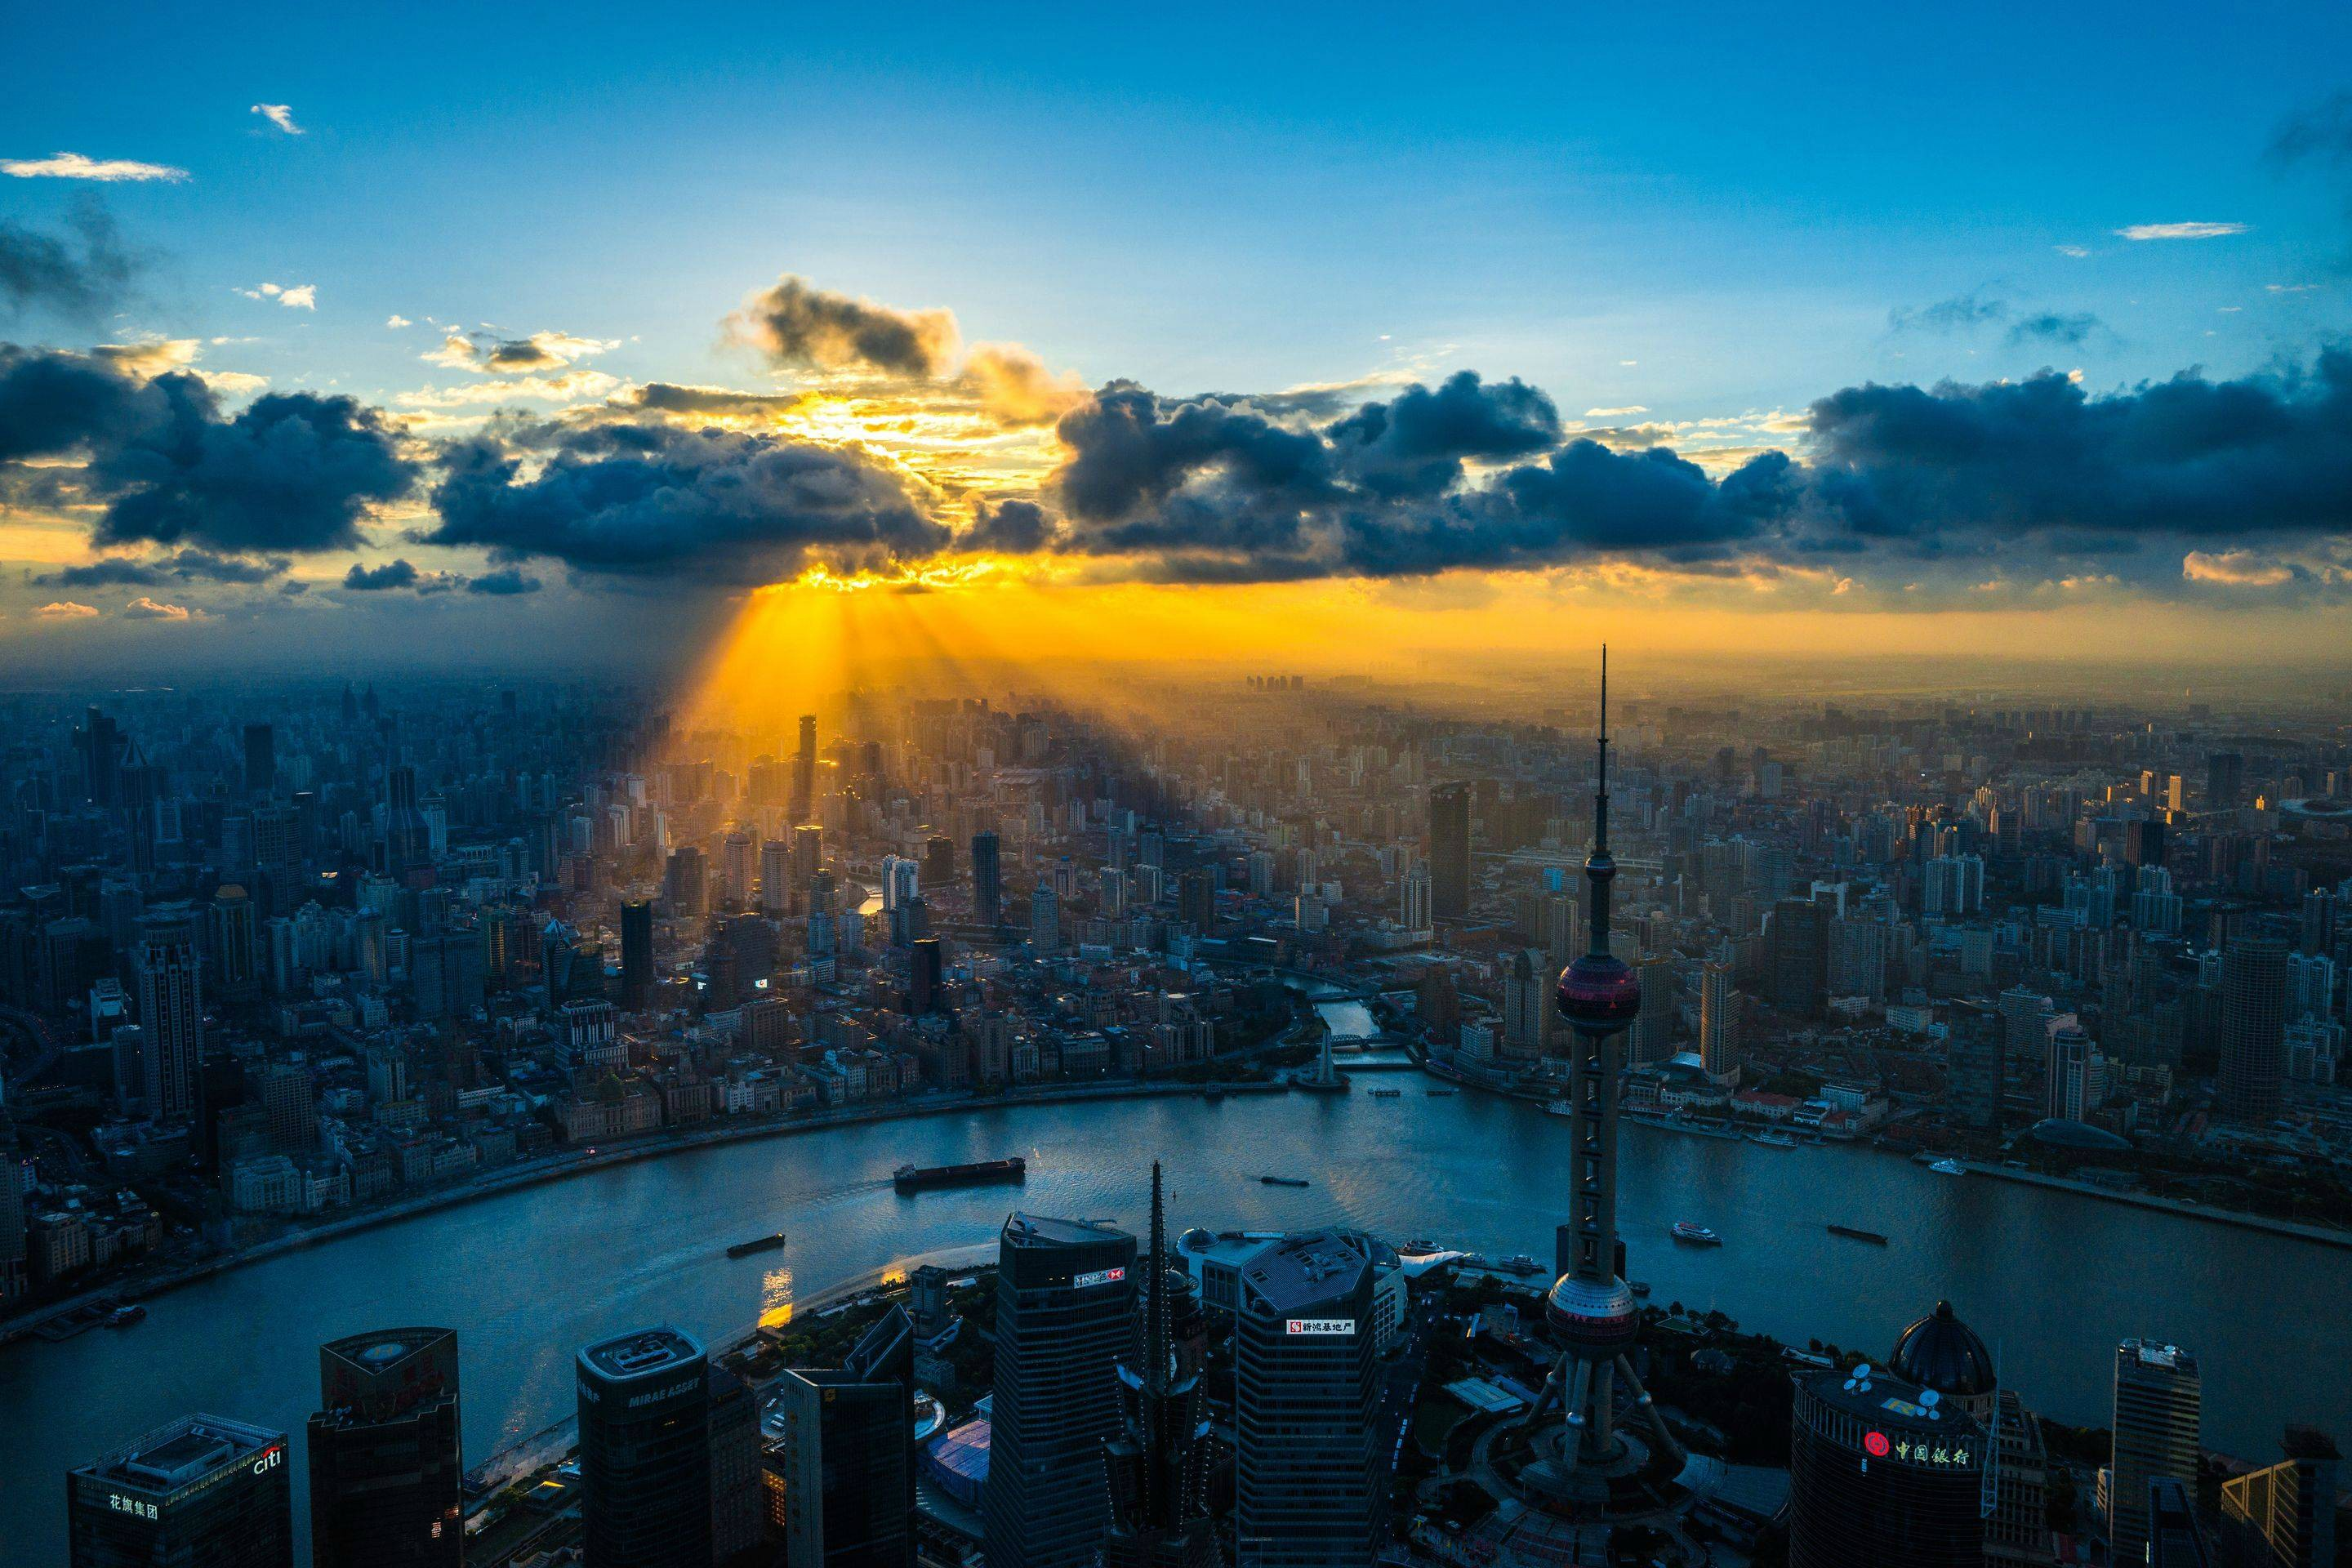 138 Shanghai Hd Wallpapers Background Images Wallpaper Abyss